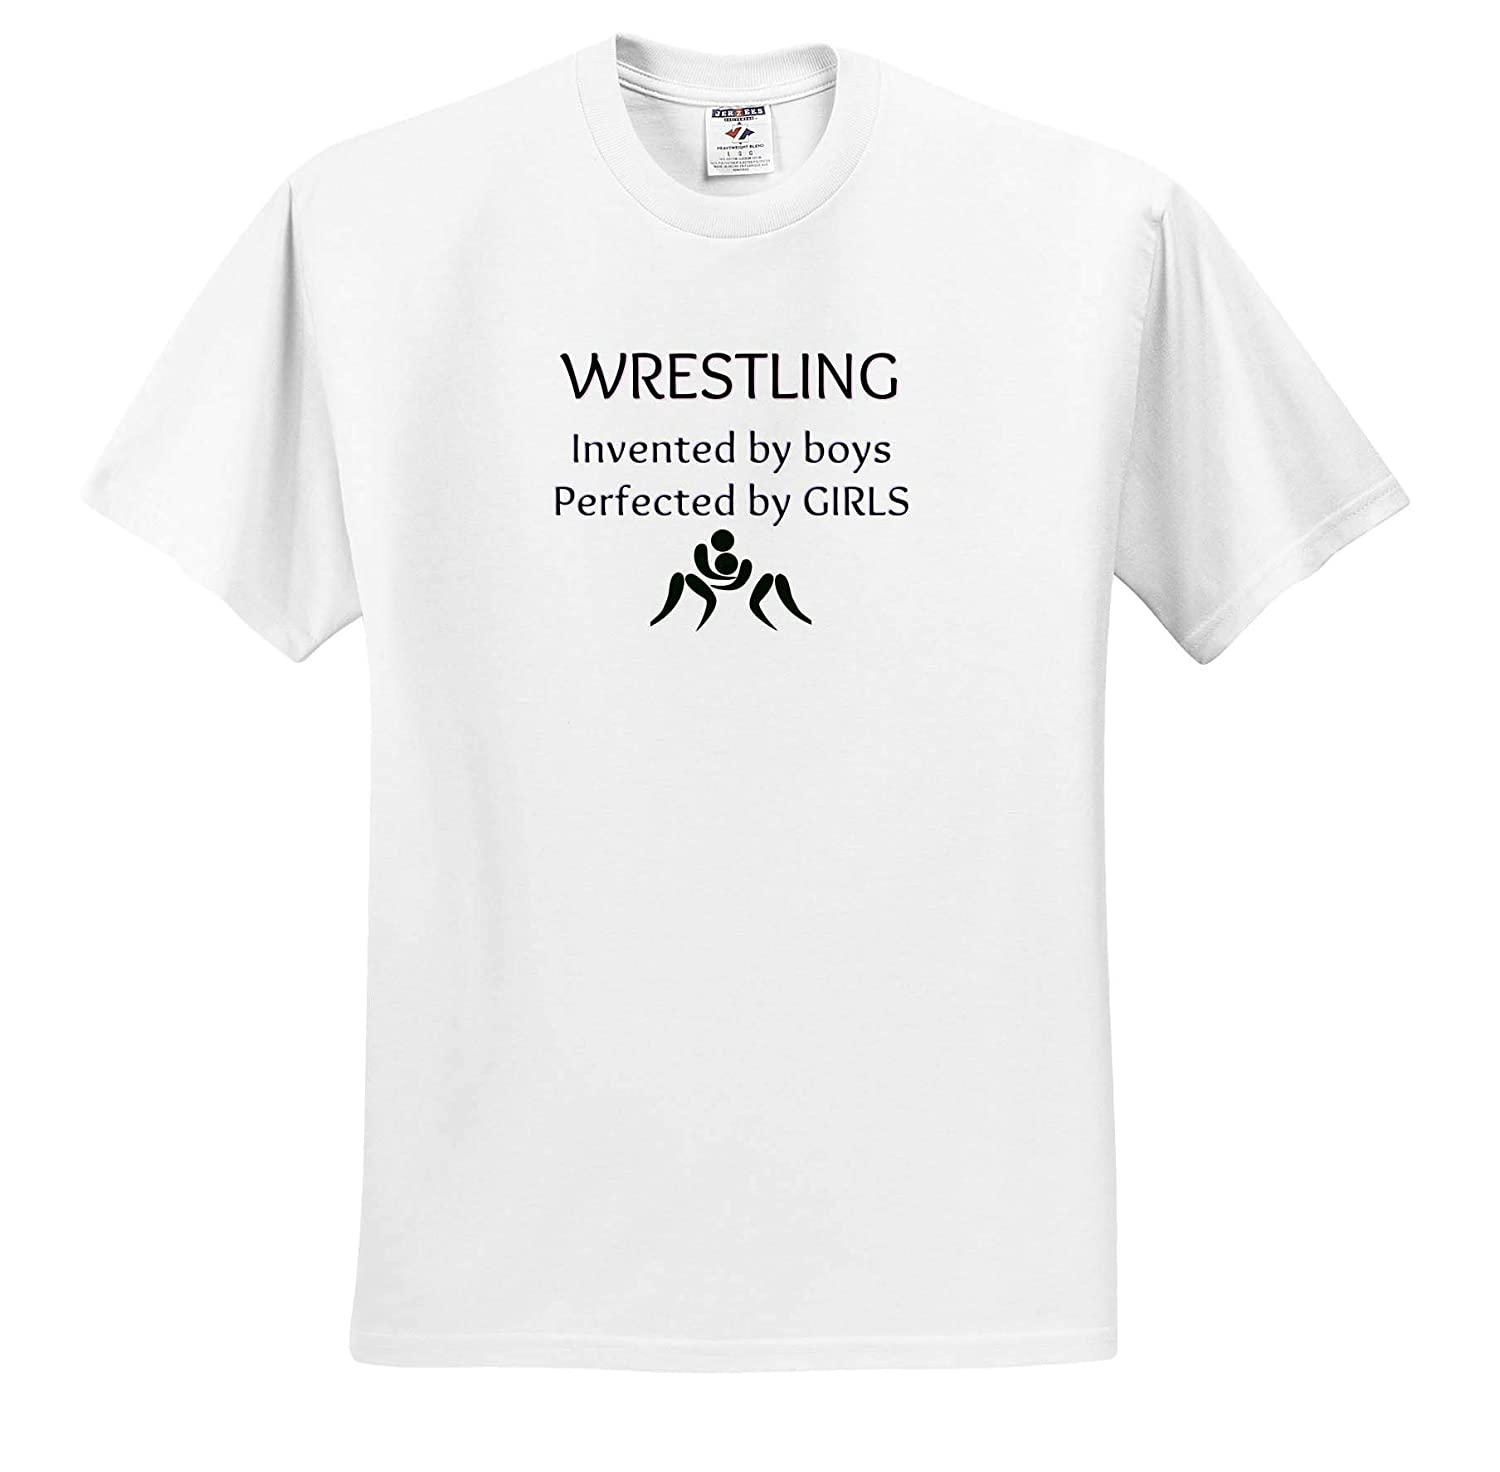 T-Shirts Image of Wrestling Invented by Boys Perfected by Girls 3dRose Carrie Merchant Quote